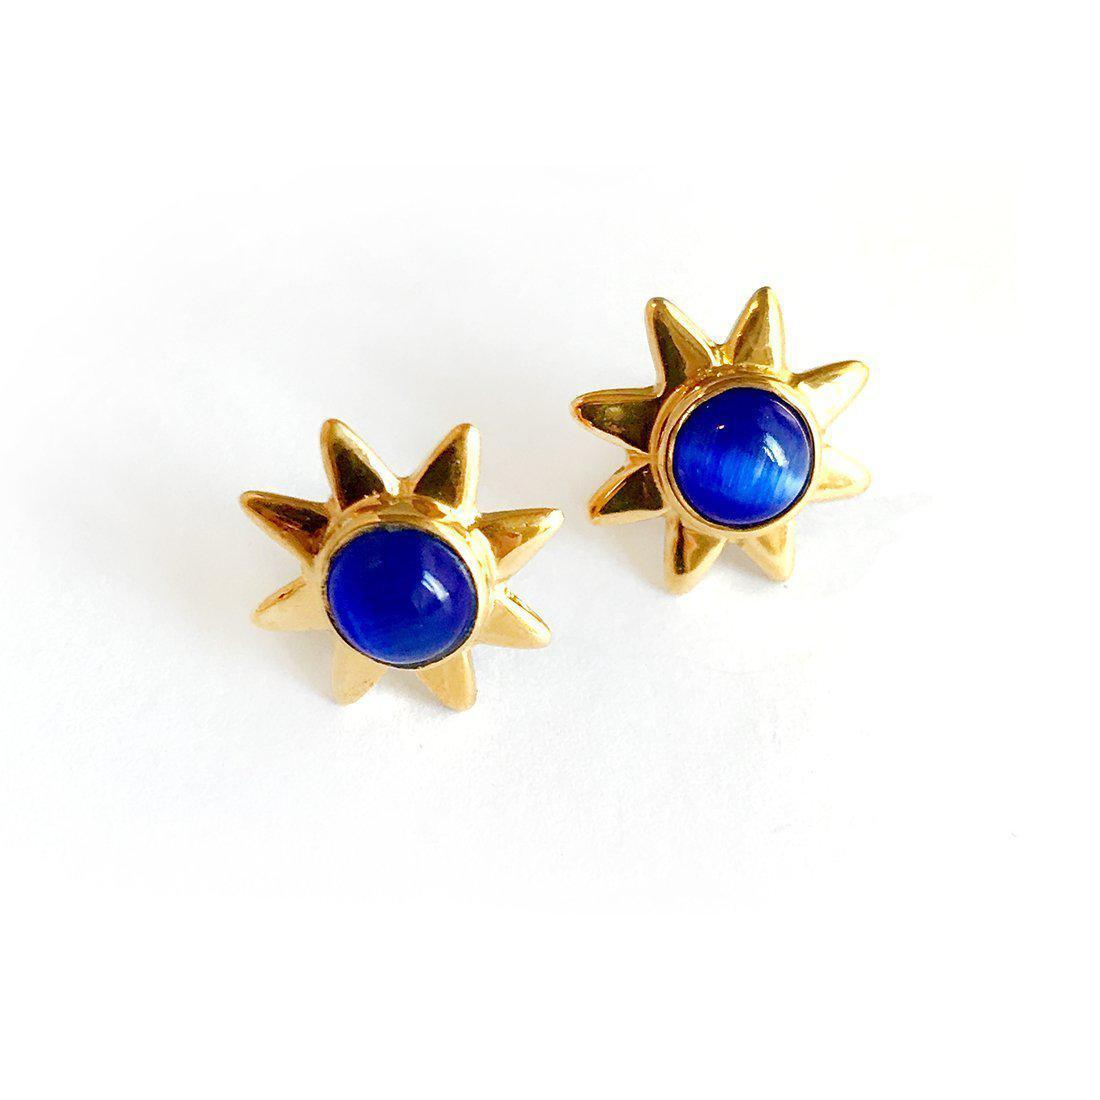 Starr 24k Gold Studs Genuine Gemstone Earrings-Women - Jewelry - Earrings-ADDISON WEEKS-Blue Aventurine-Peccadilly